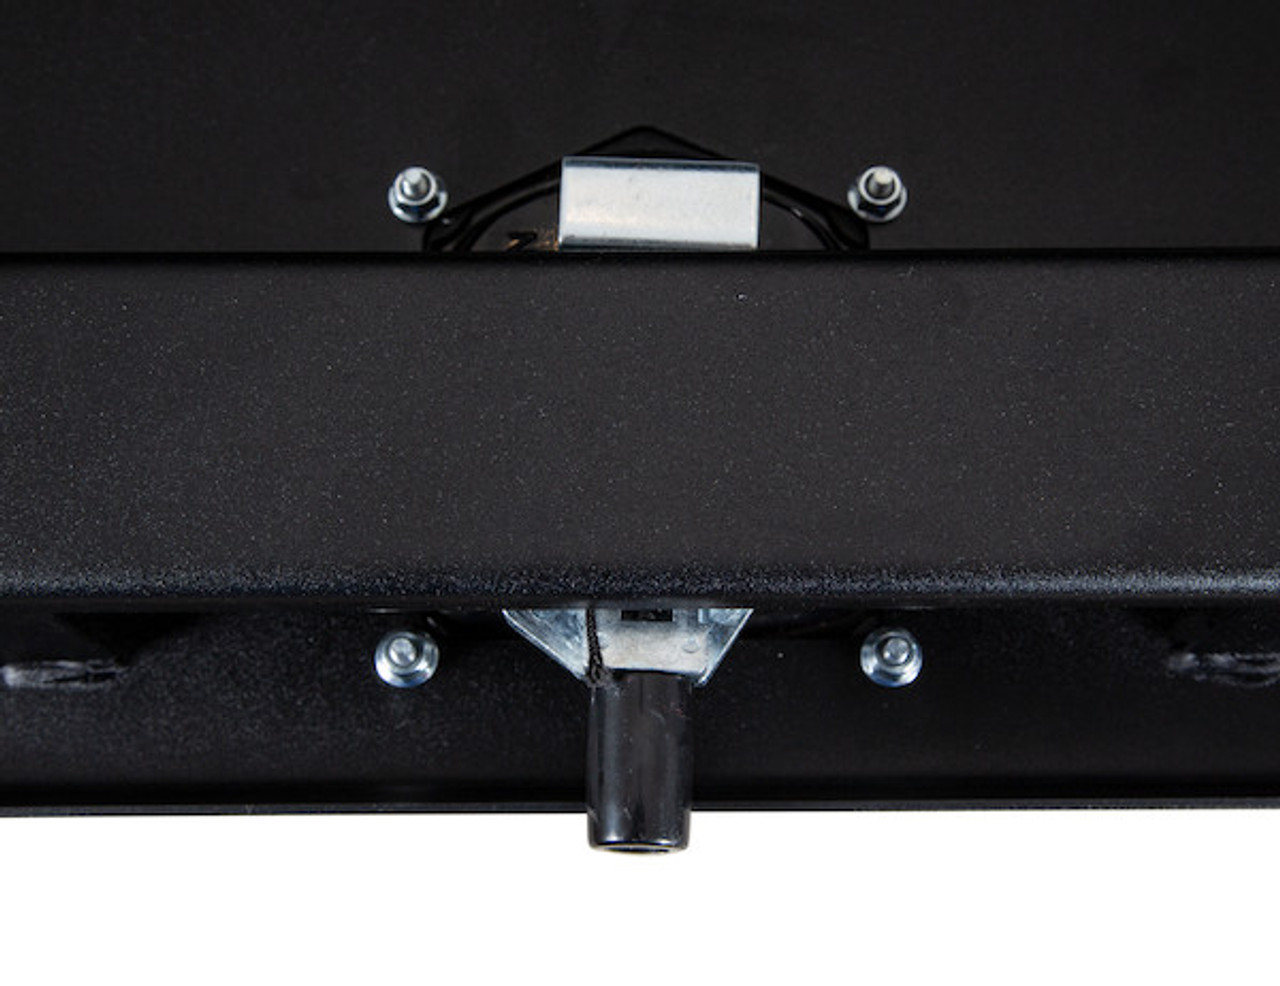 """1732510 BUYERS PRODUCTS TEXTURED MATTE BLACK STEEL UNDERBODY TRUCK TOOLBOX WITH 3-POINT LATCH 18""""Hx18""""Dx48""""W  Picture # 7"""